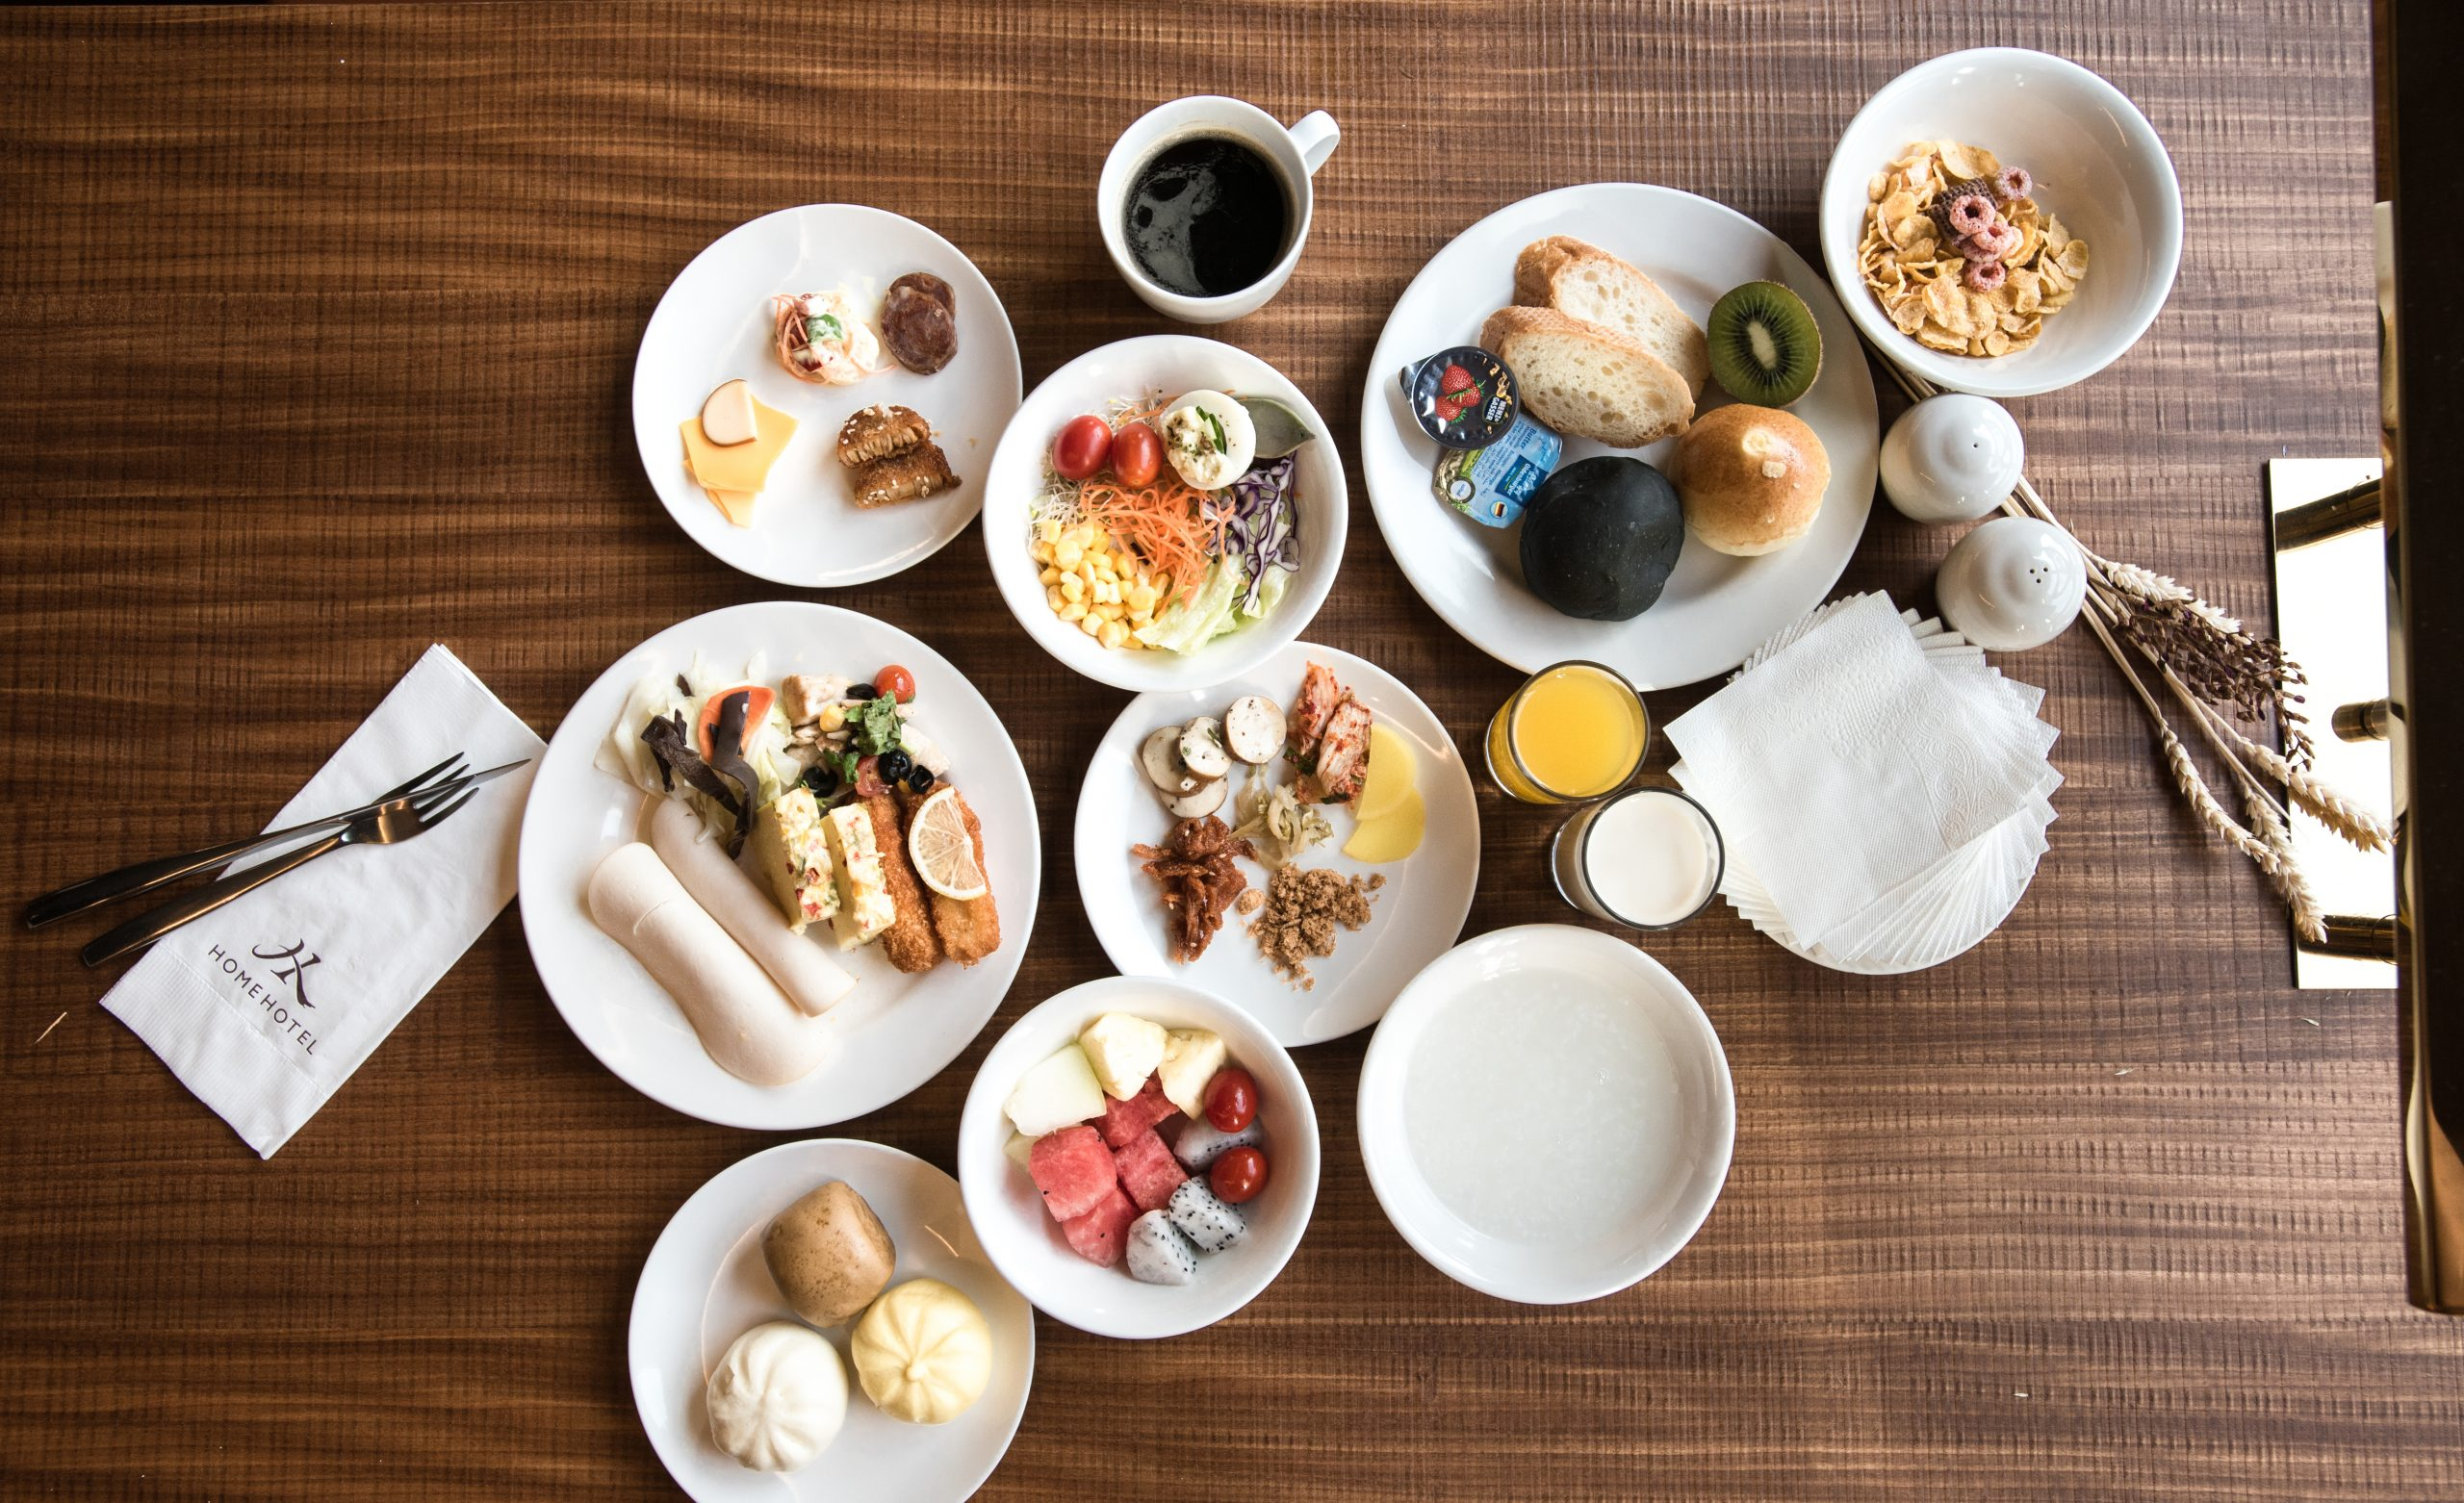 Home Hotel starts to serve Breakfast Set on March 16(Mon)